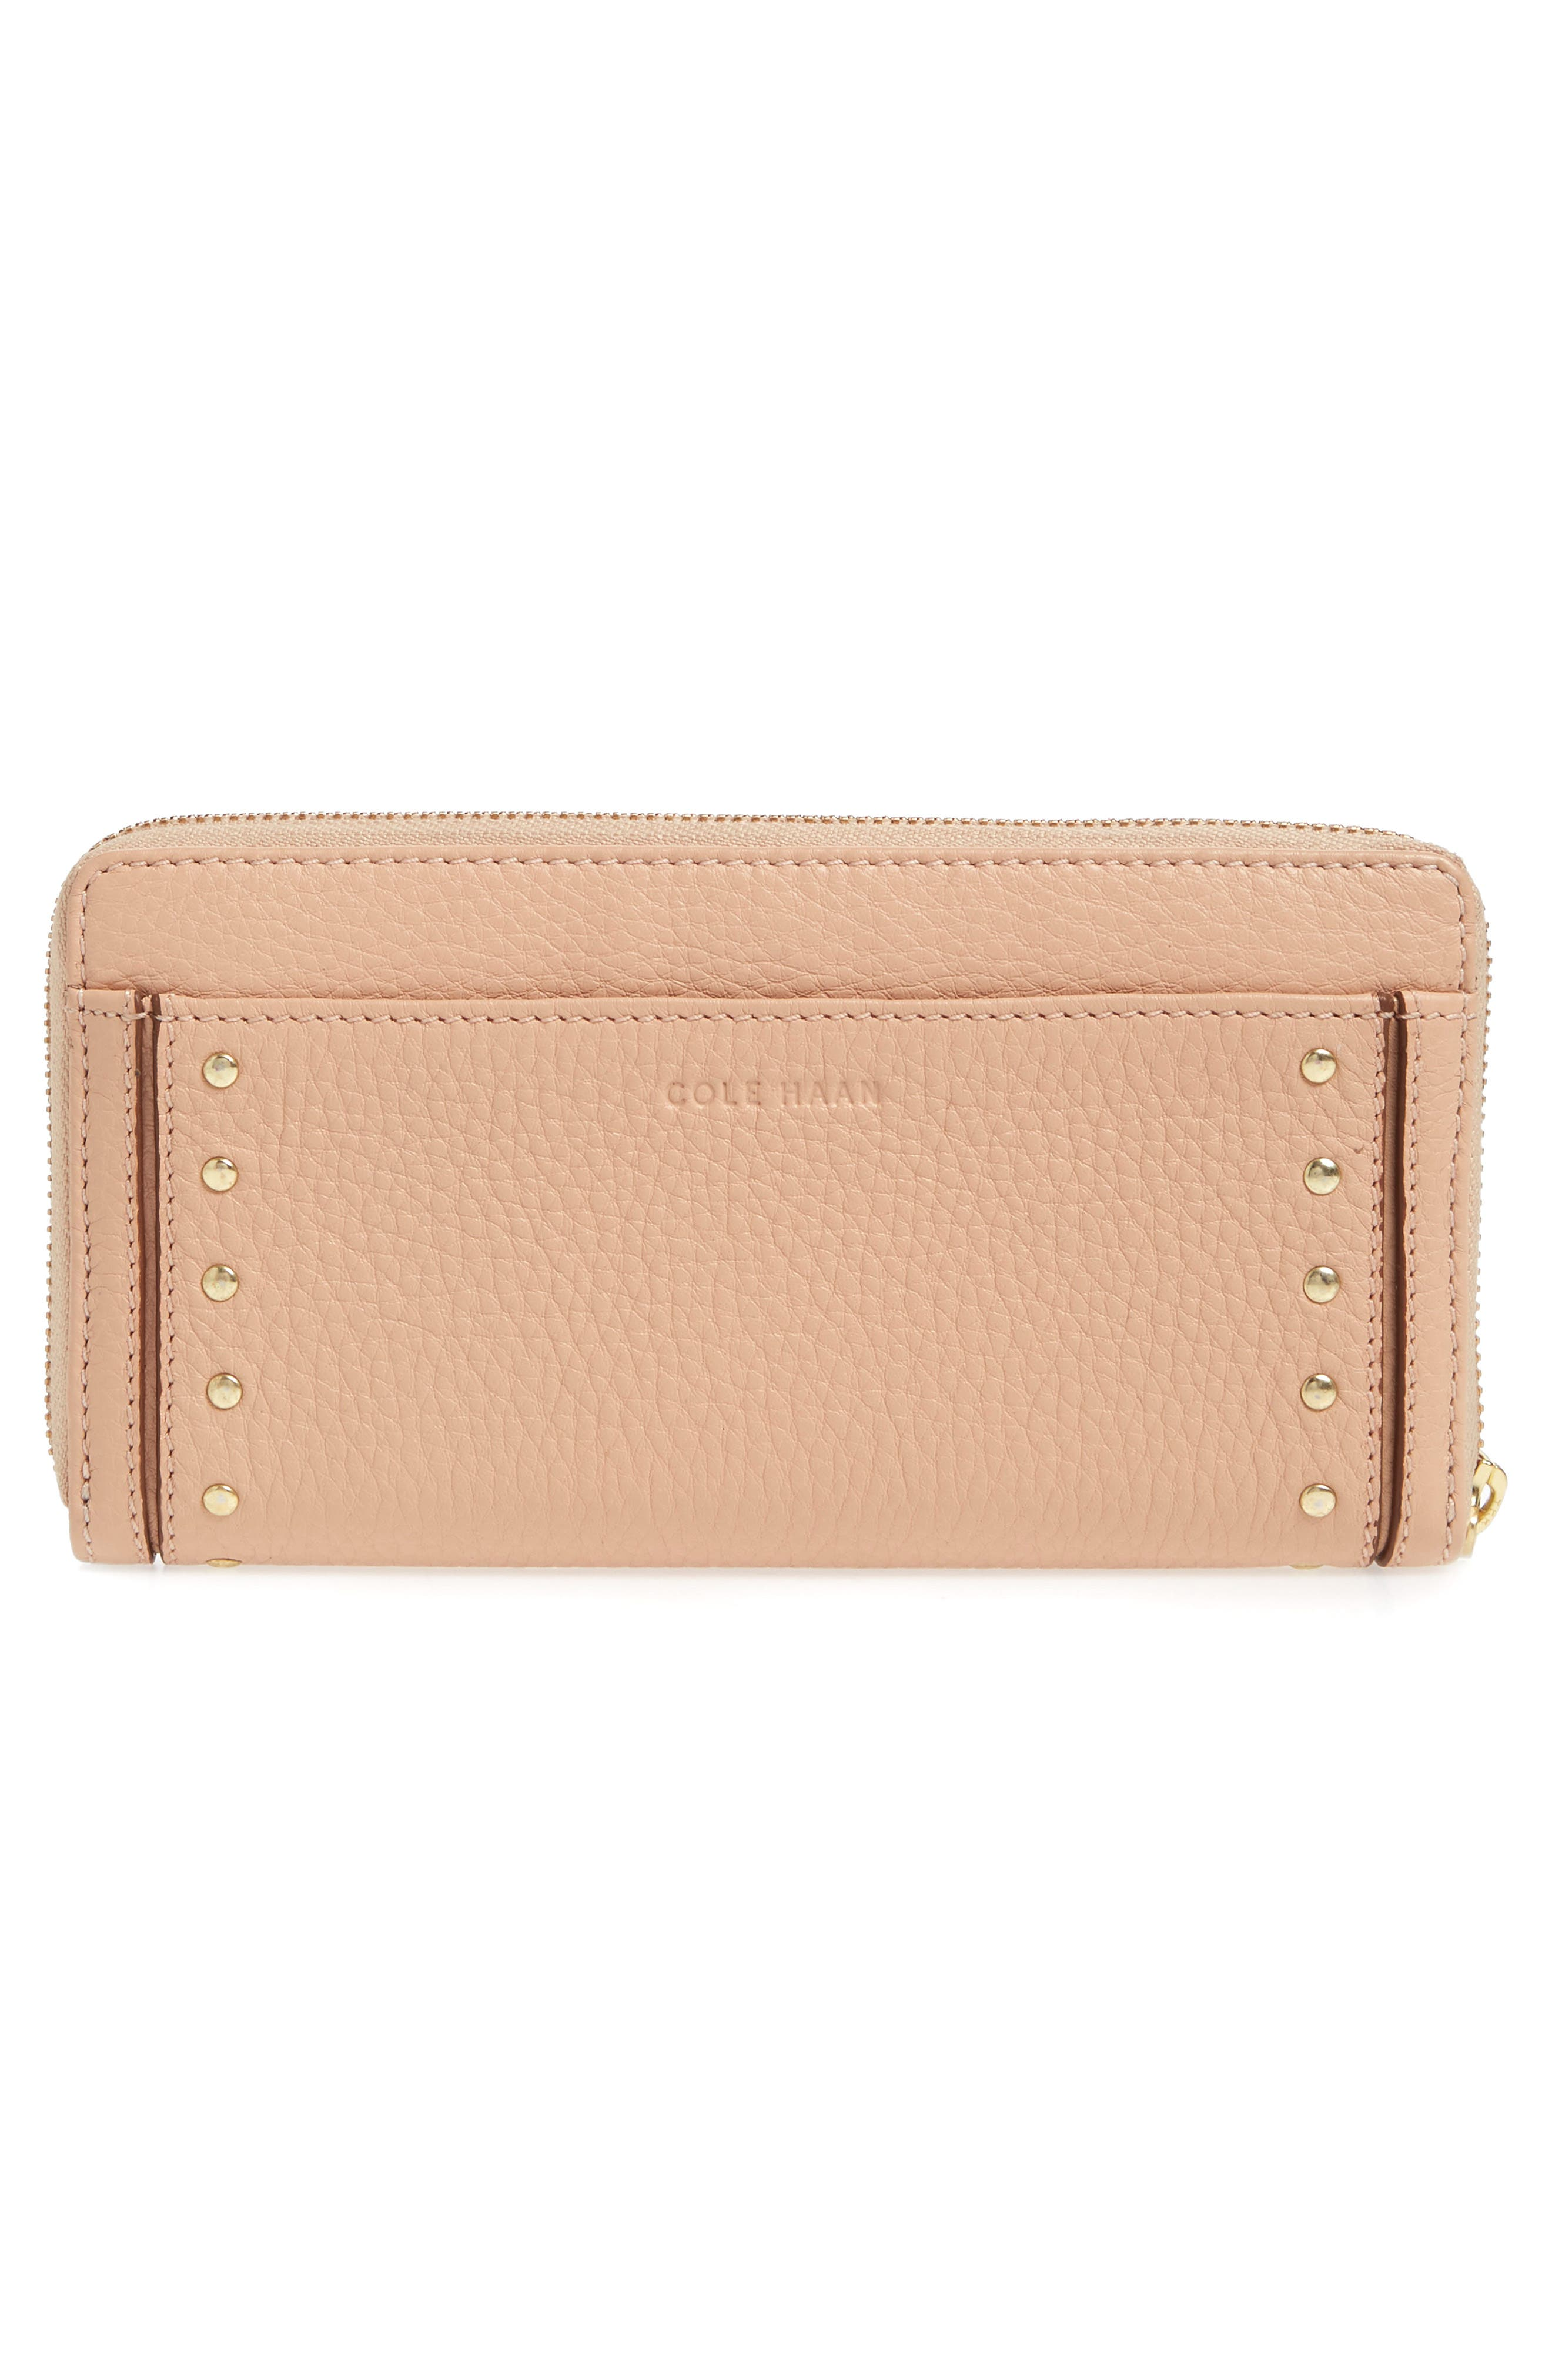 Cassidy Leather RFID Continental Zip Wallet,                             Alternate thumbnail 8, color,